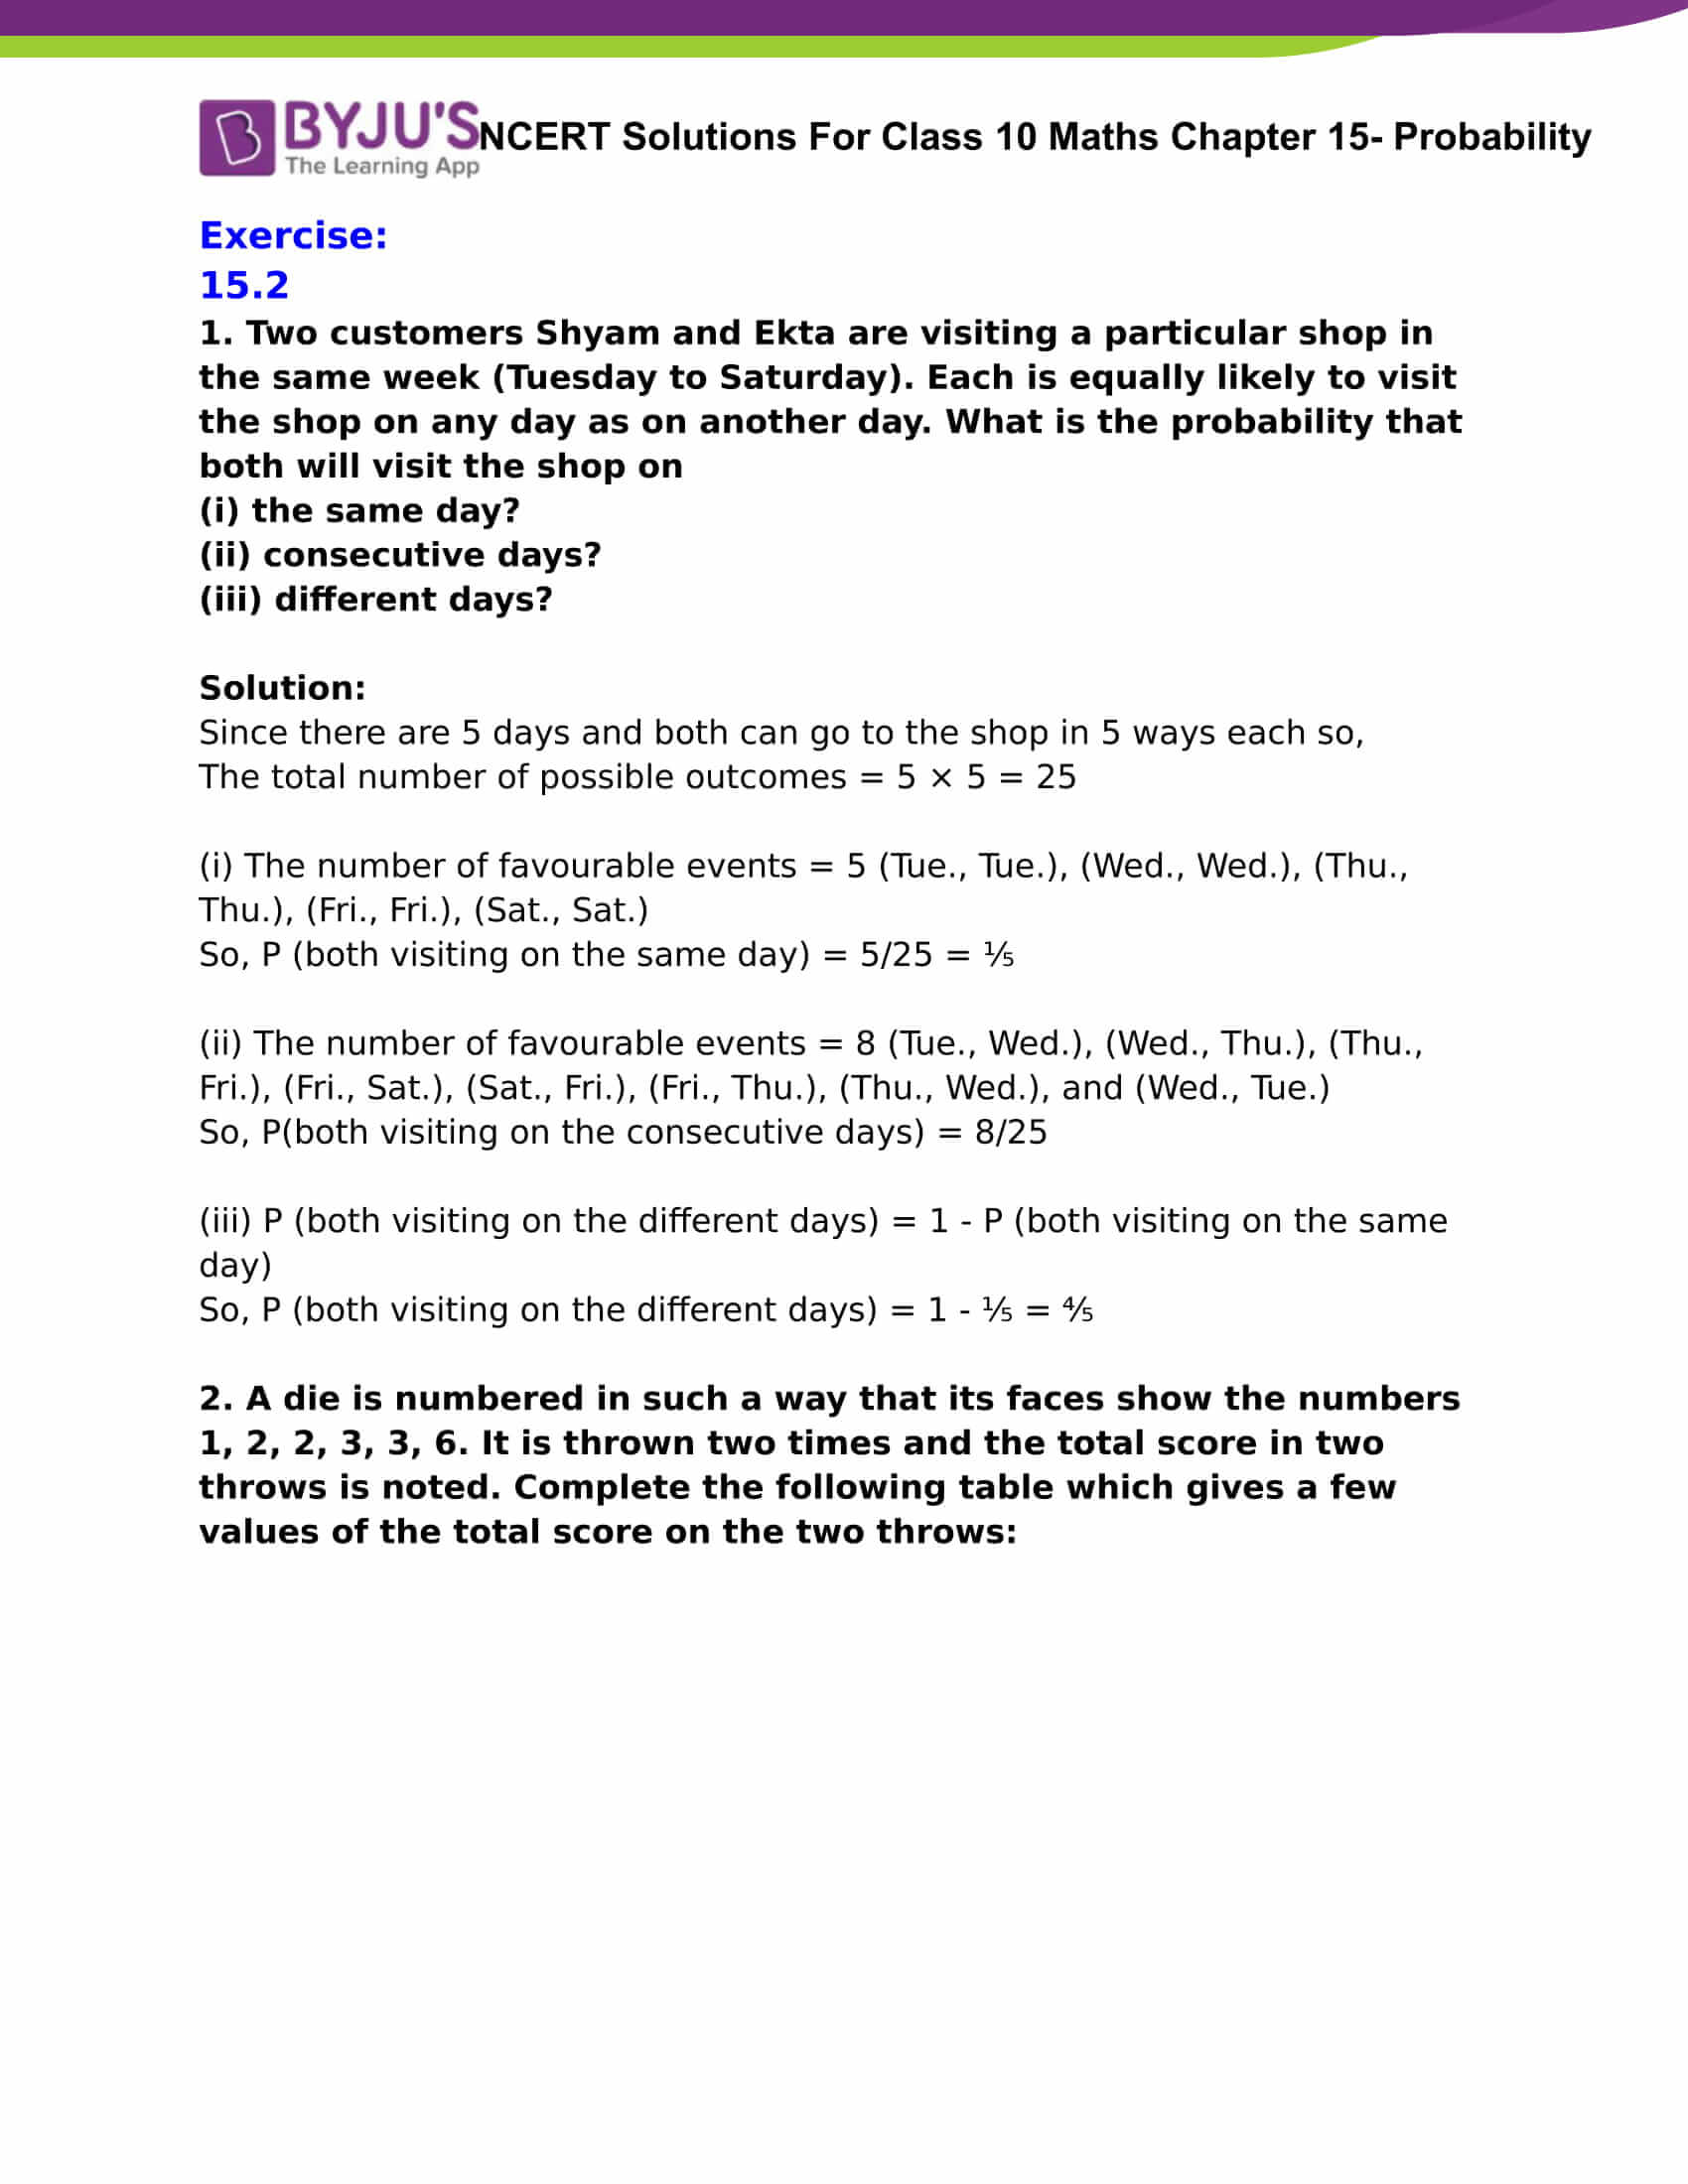 NCERT Solutions For Class 10 Maths Chapter 15 Probability Part 15